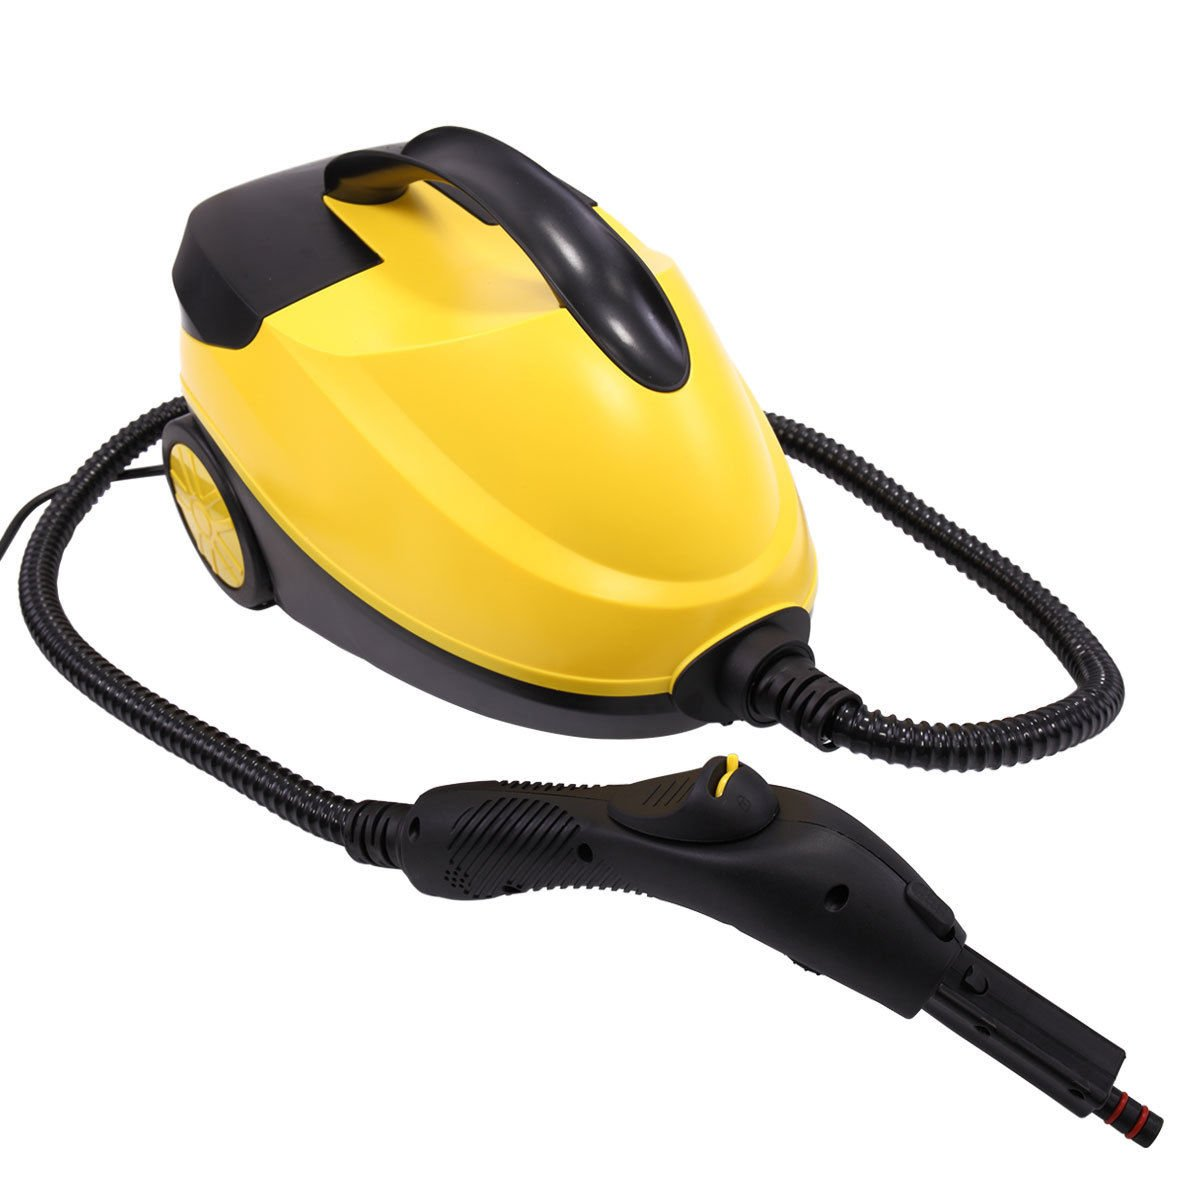 New Portable Professional Multi Purpose Pressure Steam Cleaner Carpet Bathroom 1500W